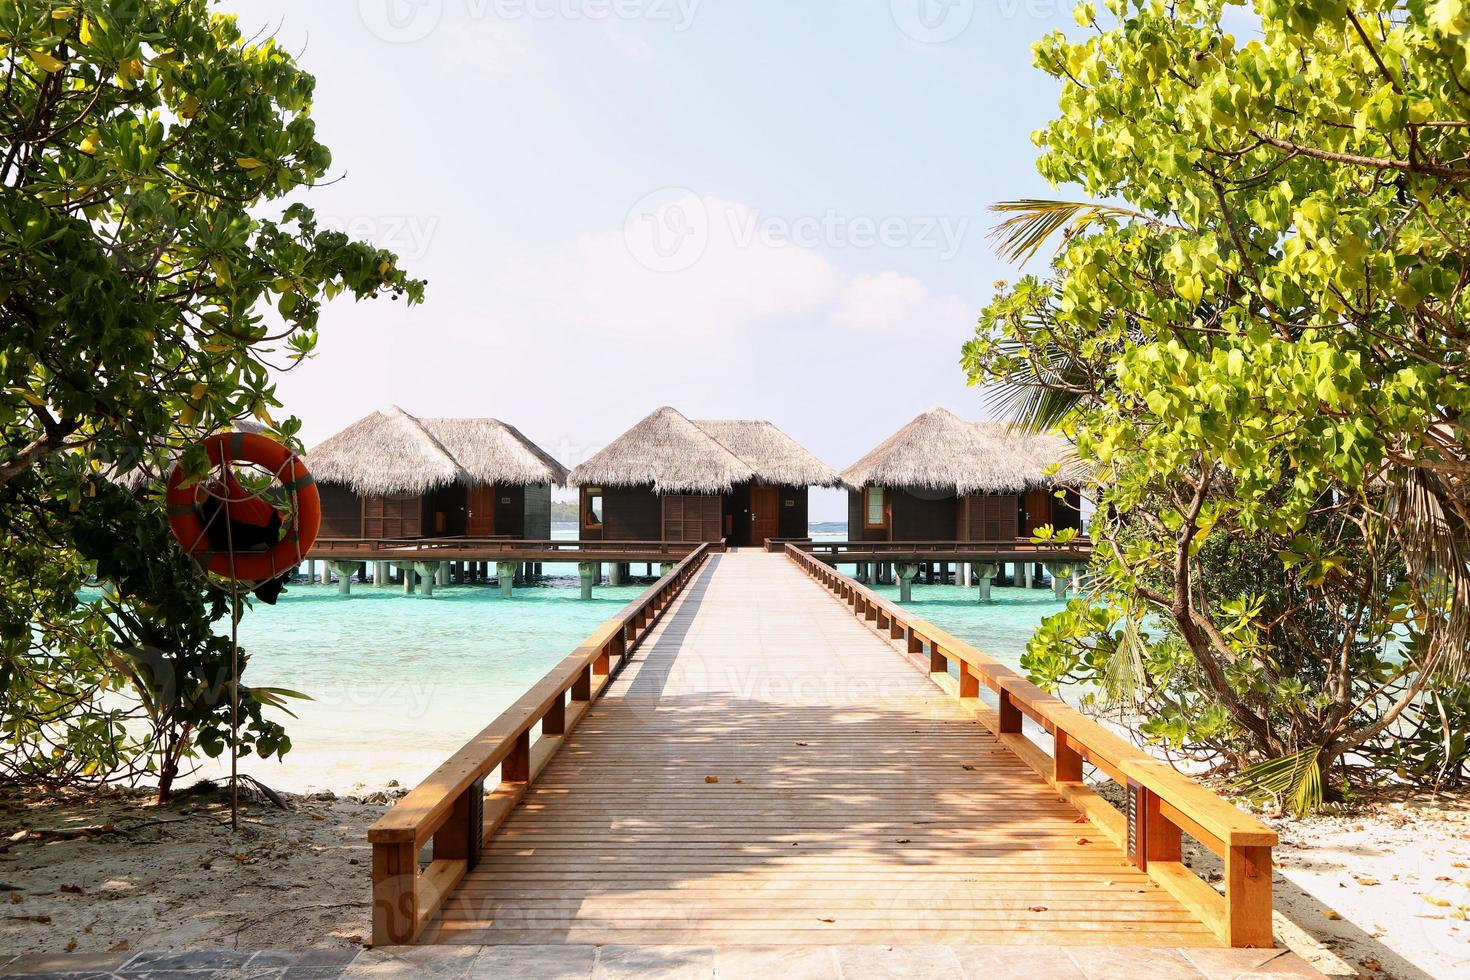 Beautiful wooden houses in Maldives photo